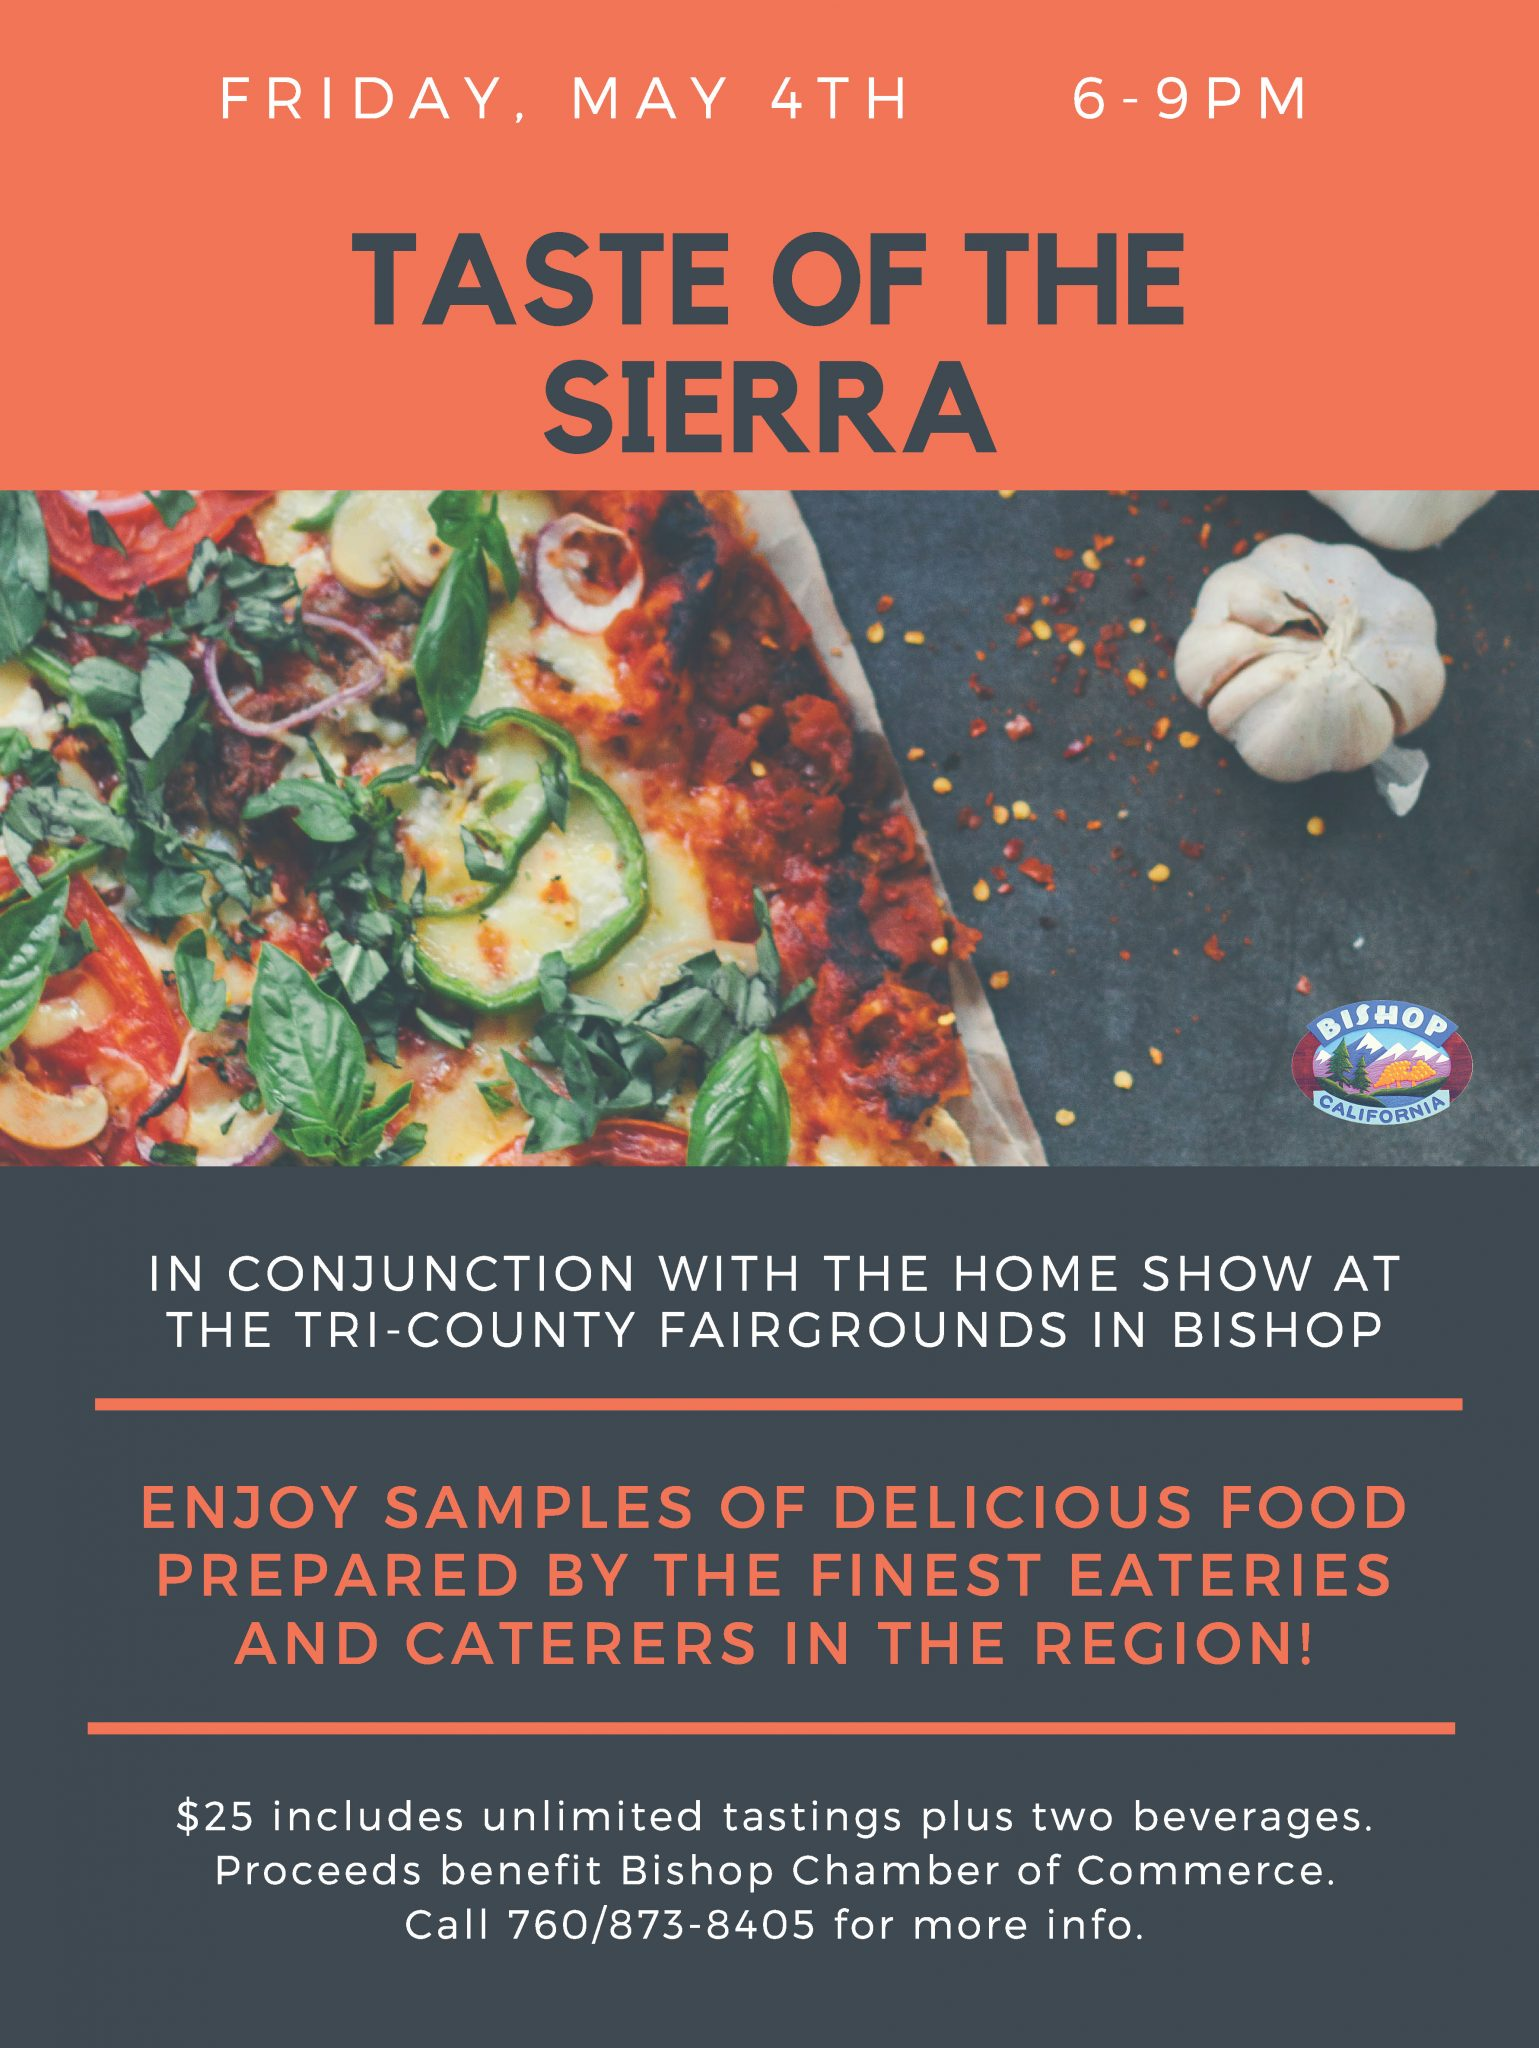 TASTE-OF-THE-SIERRA-FLYER-2018.jpg